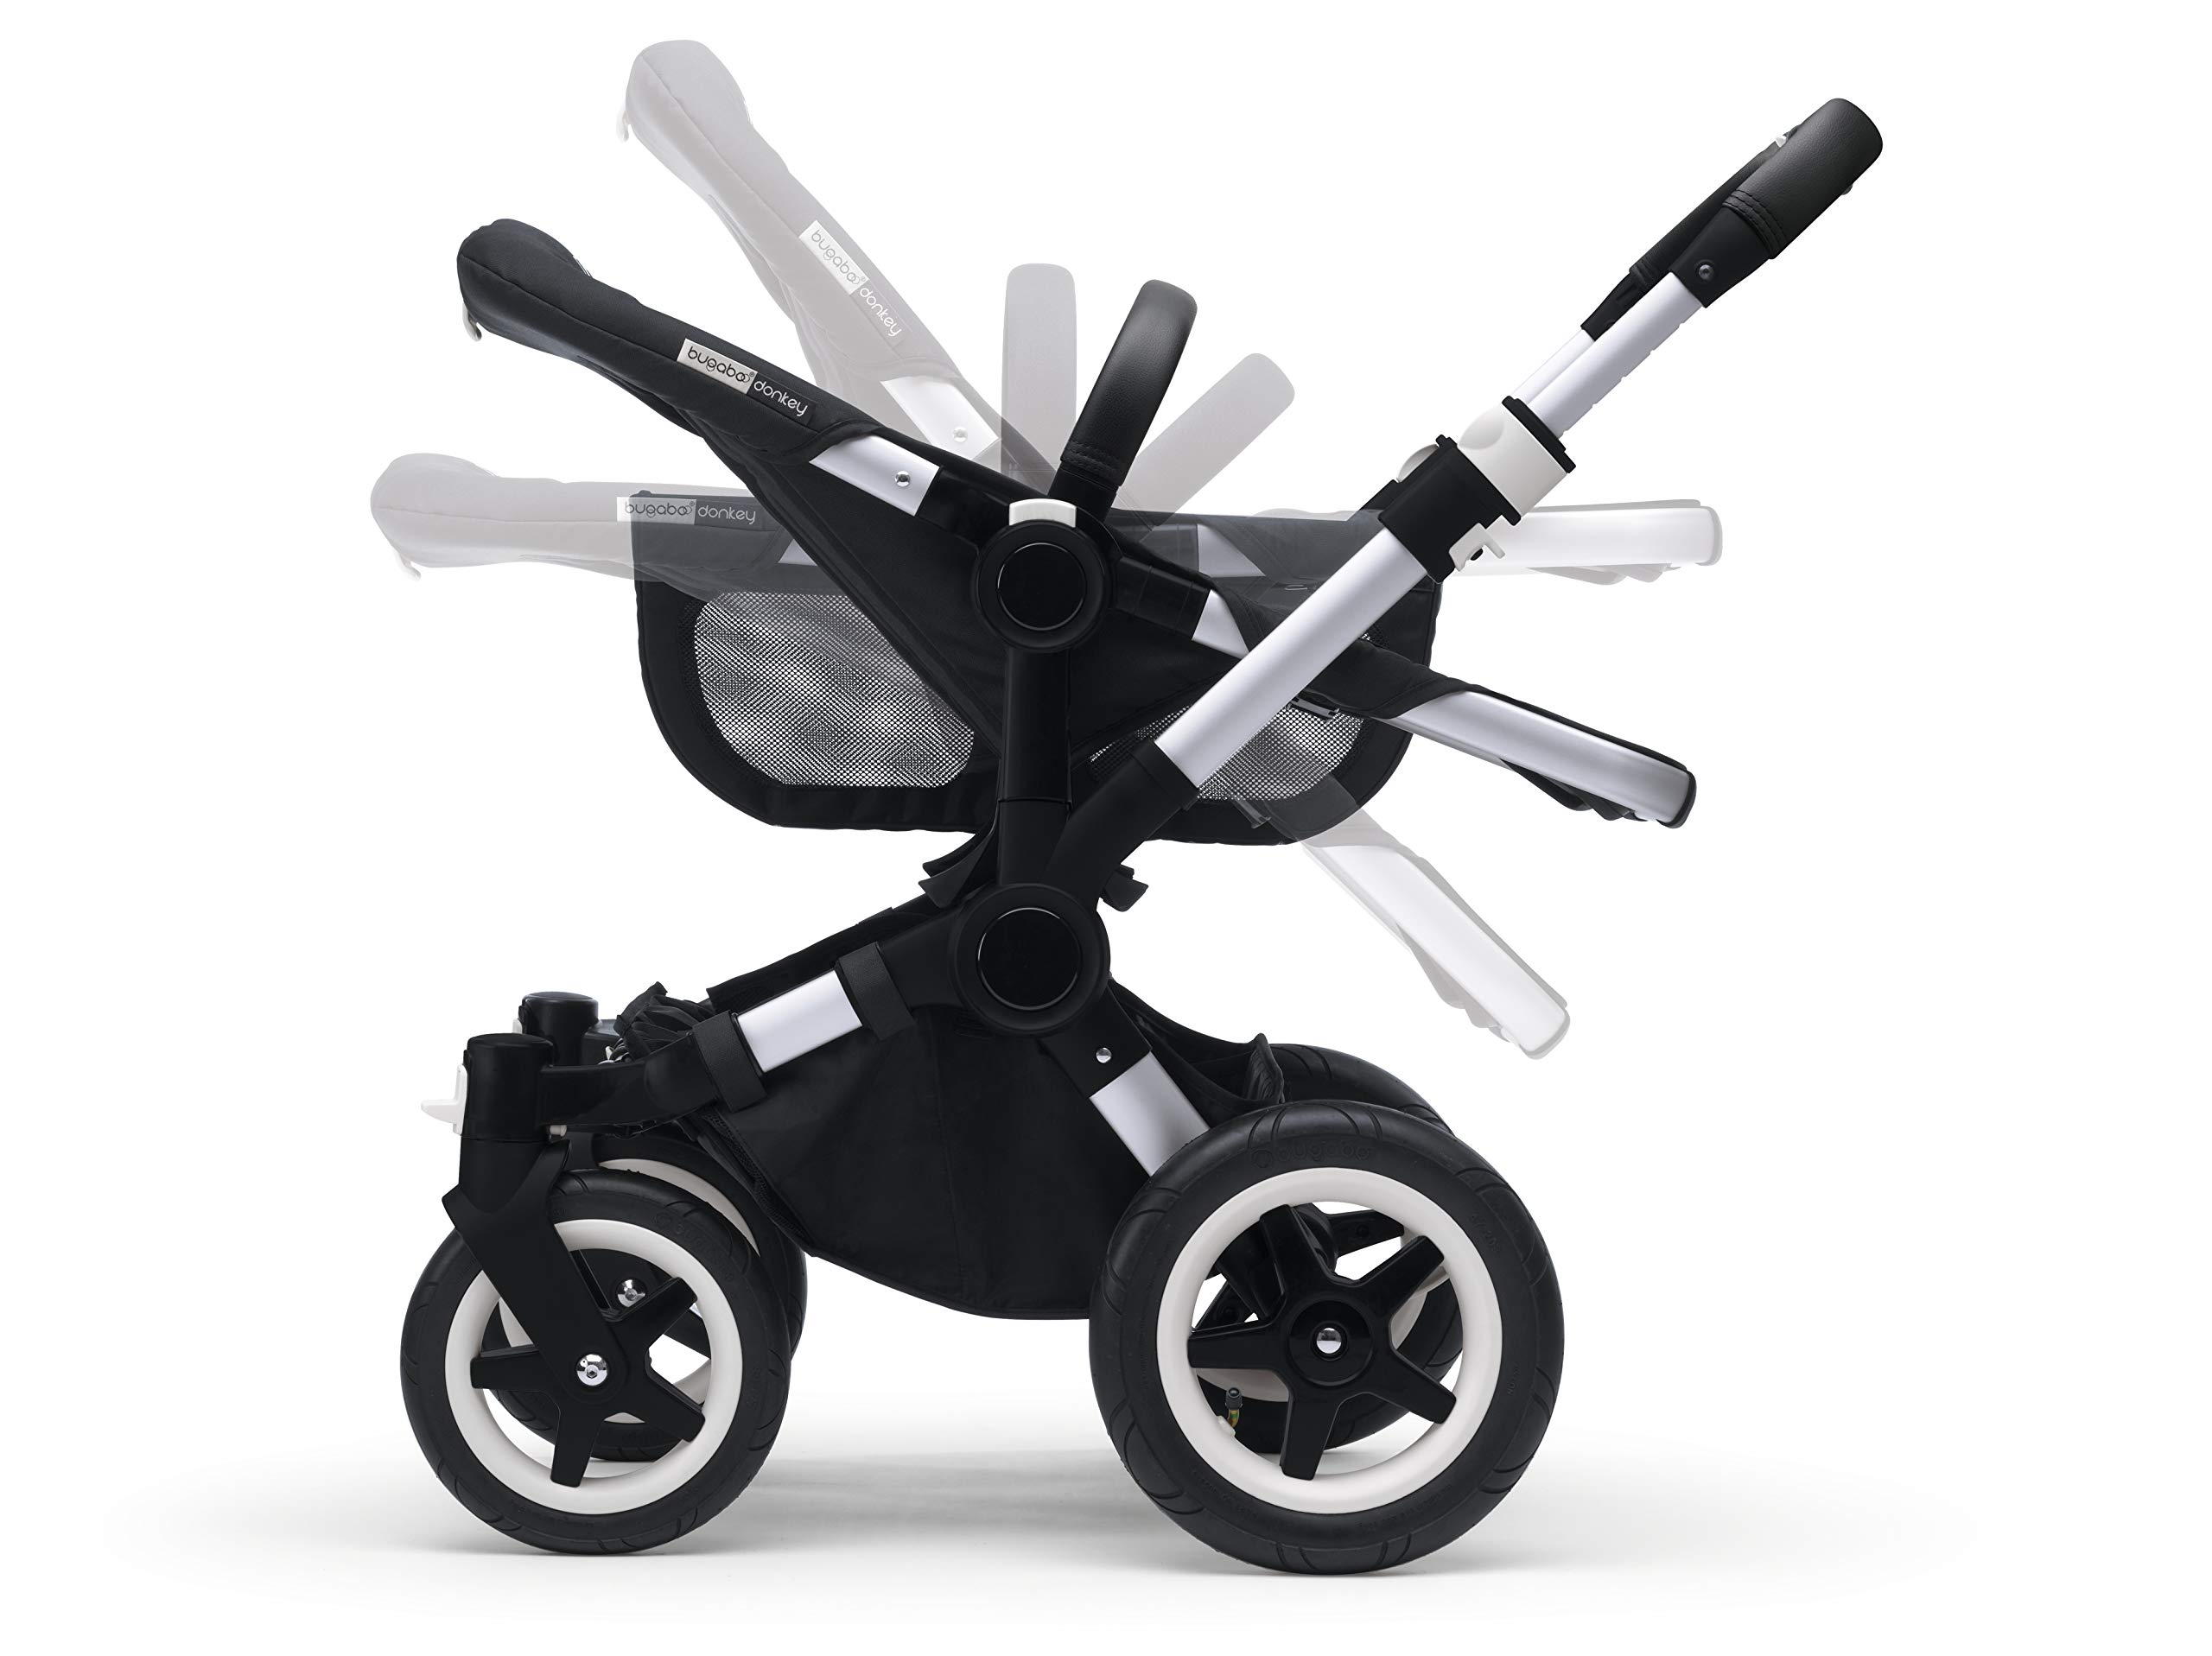 Bugaboo Donkey 2 Duo, 2 in 1 Pram and Double Pushchair for Baby and Toddler, Black/Soft Pink Bugaboo Perfect for two children of different ages Use as a double pushchair or convert it back into a single (mono) in a few simple clicks You only need one hand to push, steer and turn 5